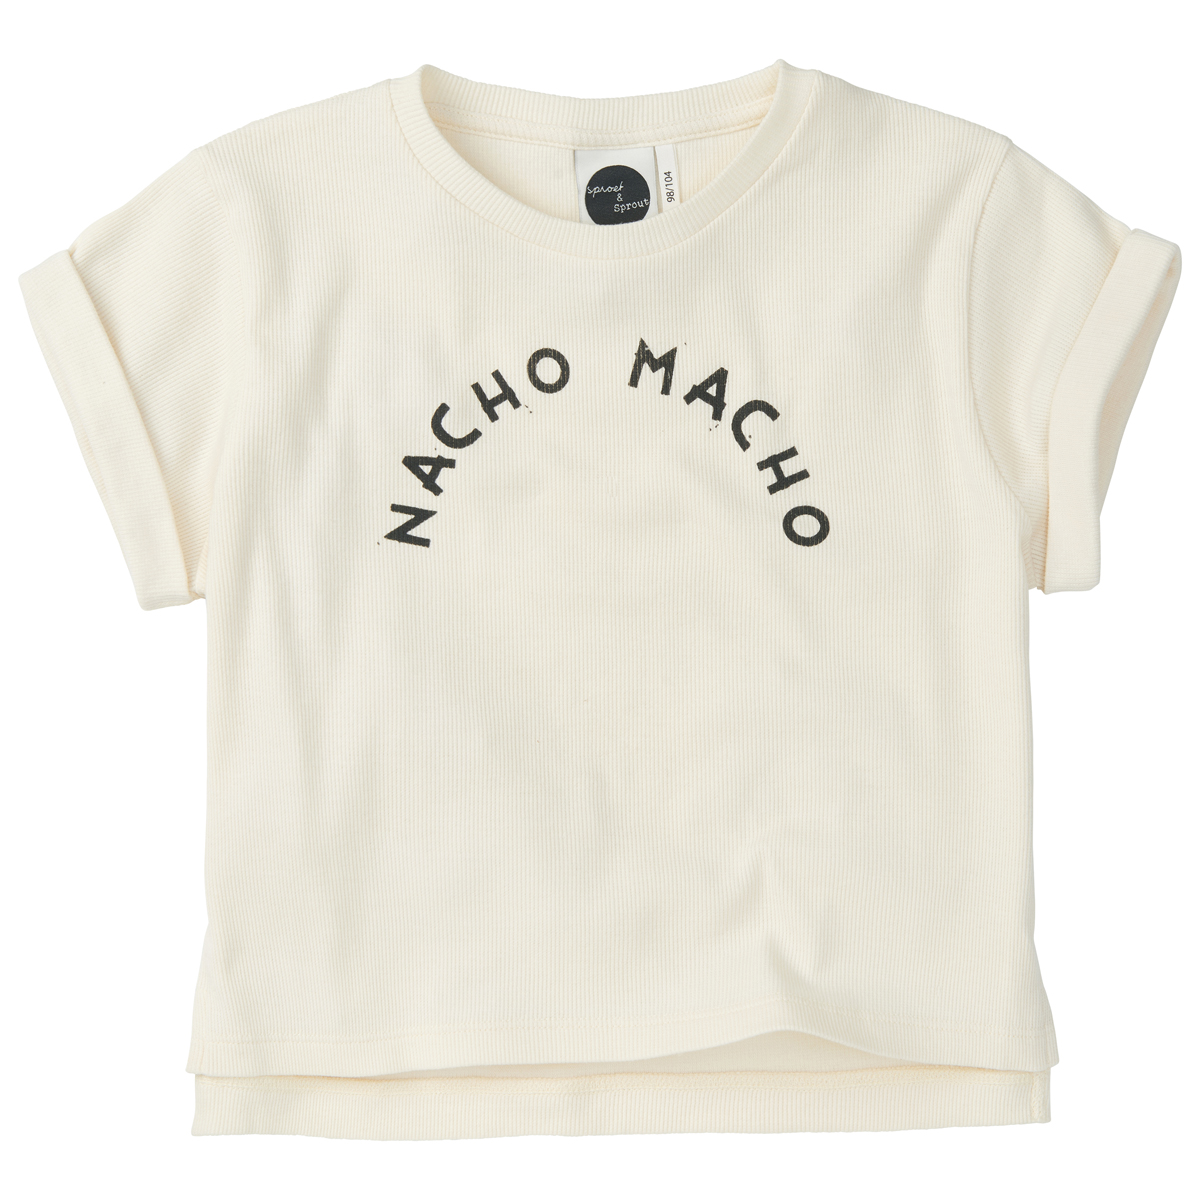 Sproet & Sprout Boxy T-Shirt in Nacho Macho White